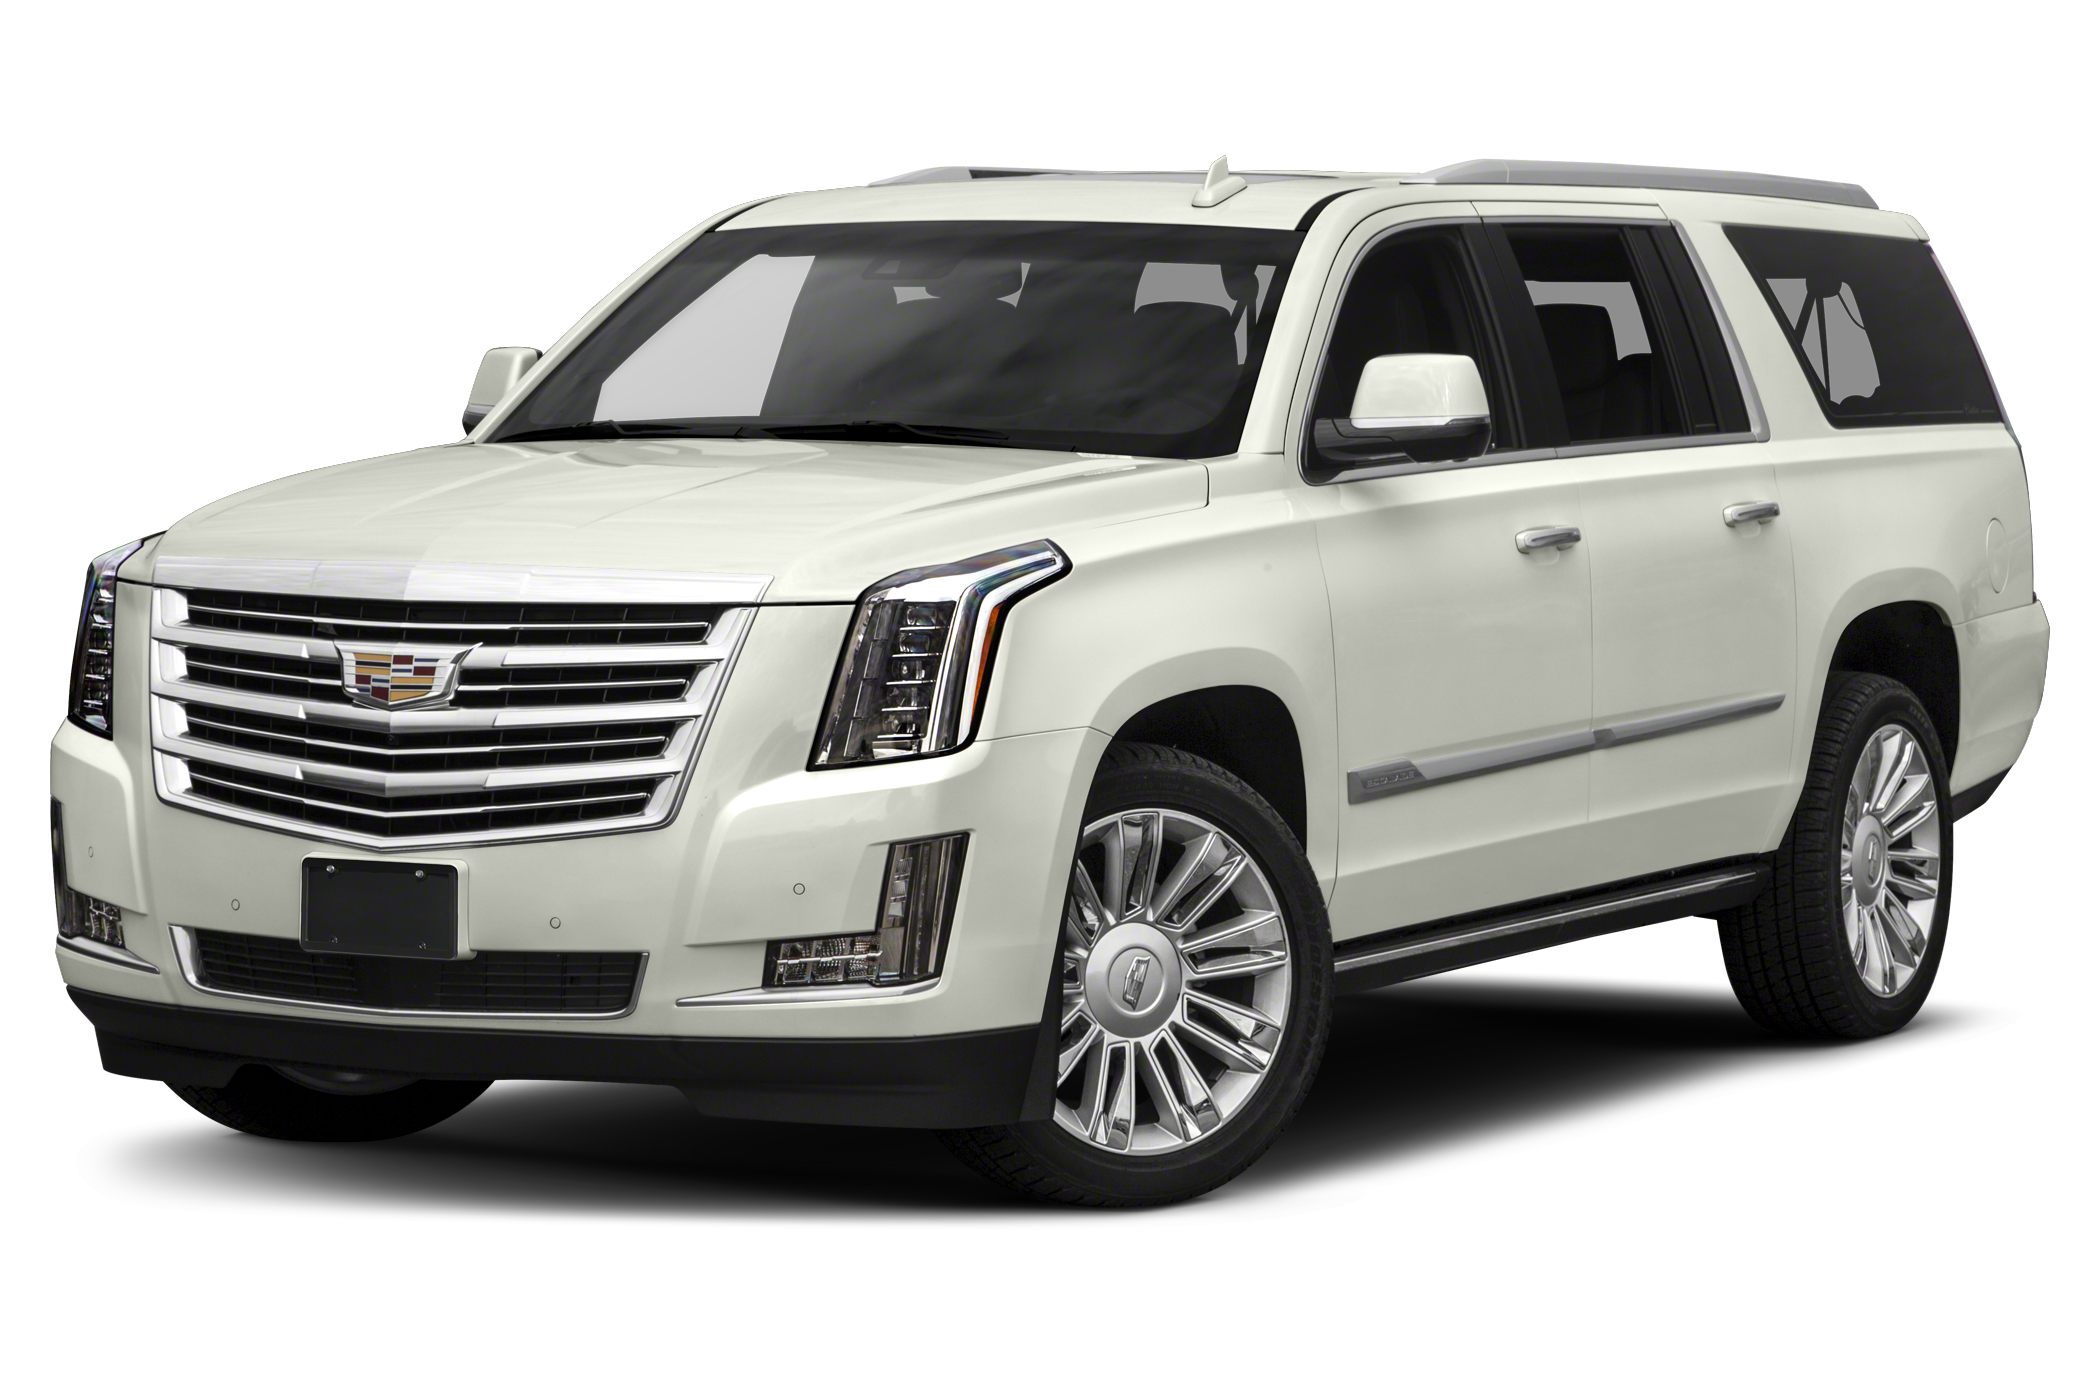 2016 Cadillac Escalade ESV Platinum 4x4 Pricing and Options